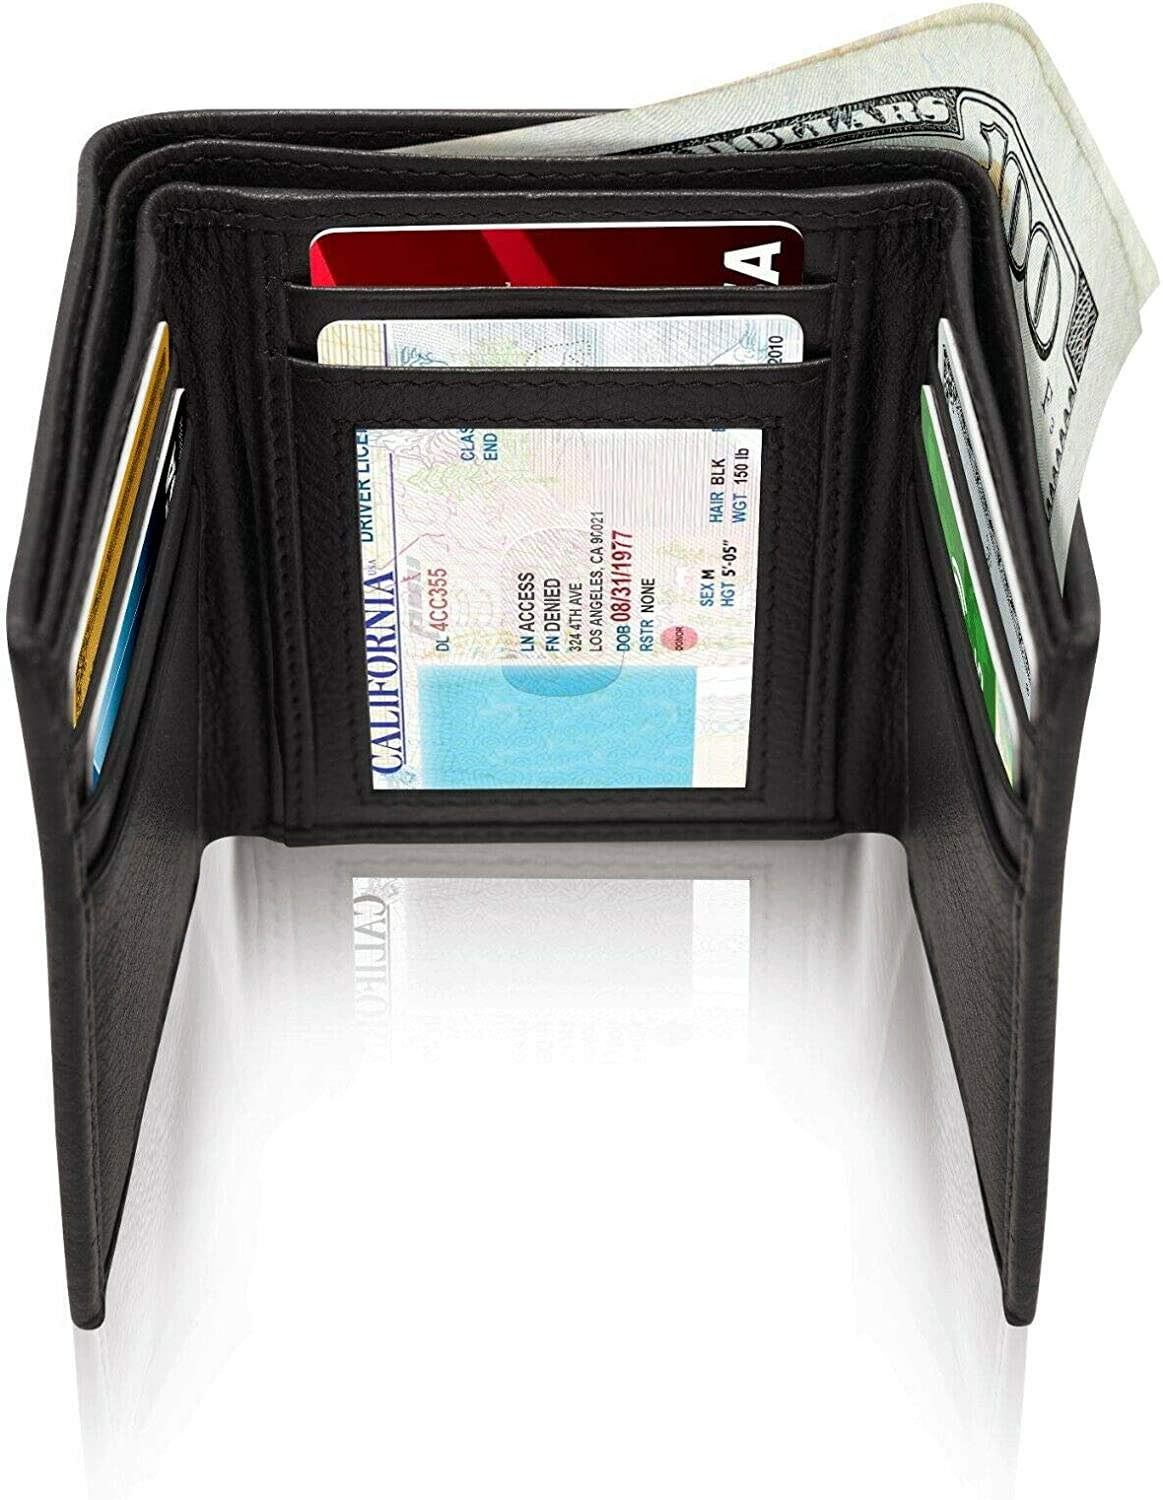 Real Leather Slim Wallets For Men Trifold Mens Wallet W/ ID Window RFID Blocking (Black Smooth)